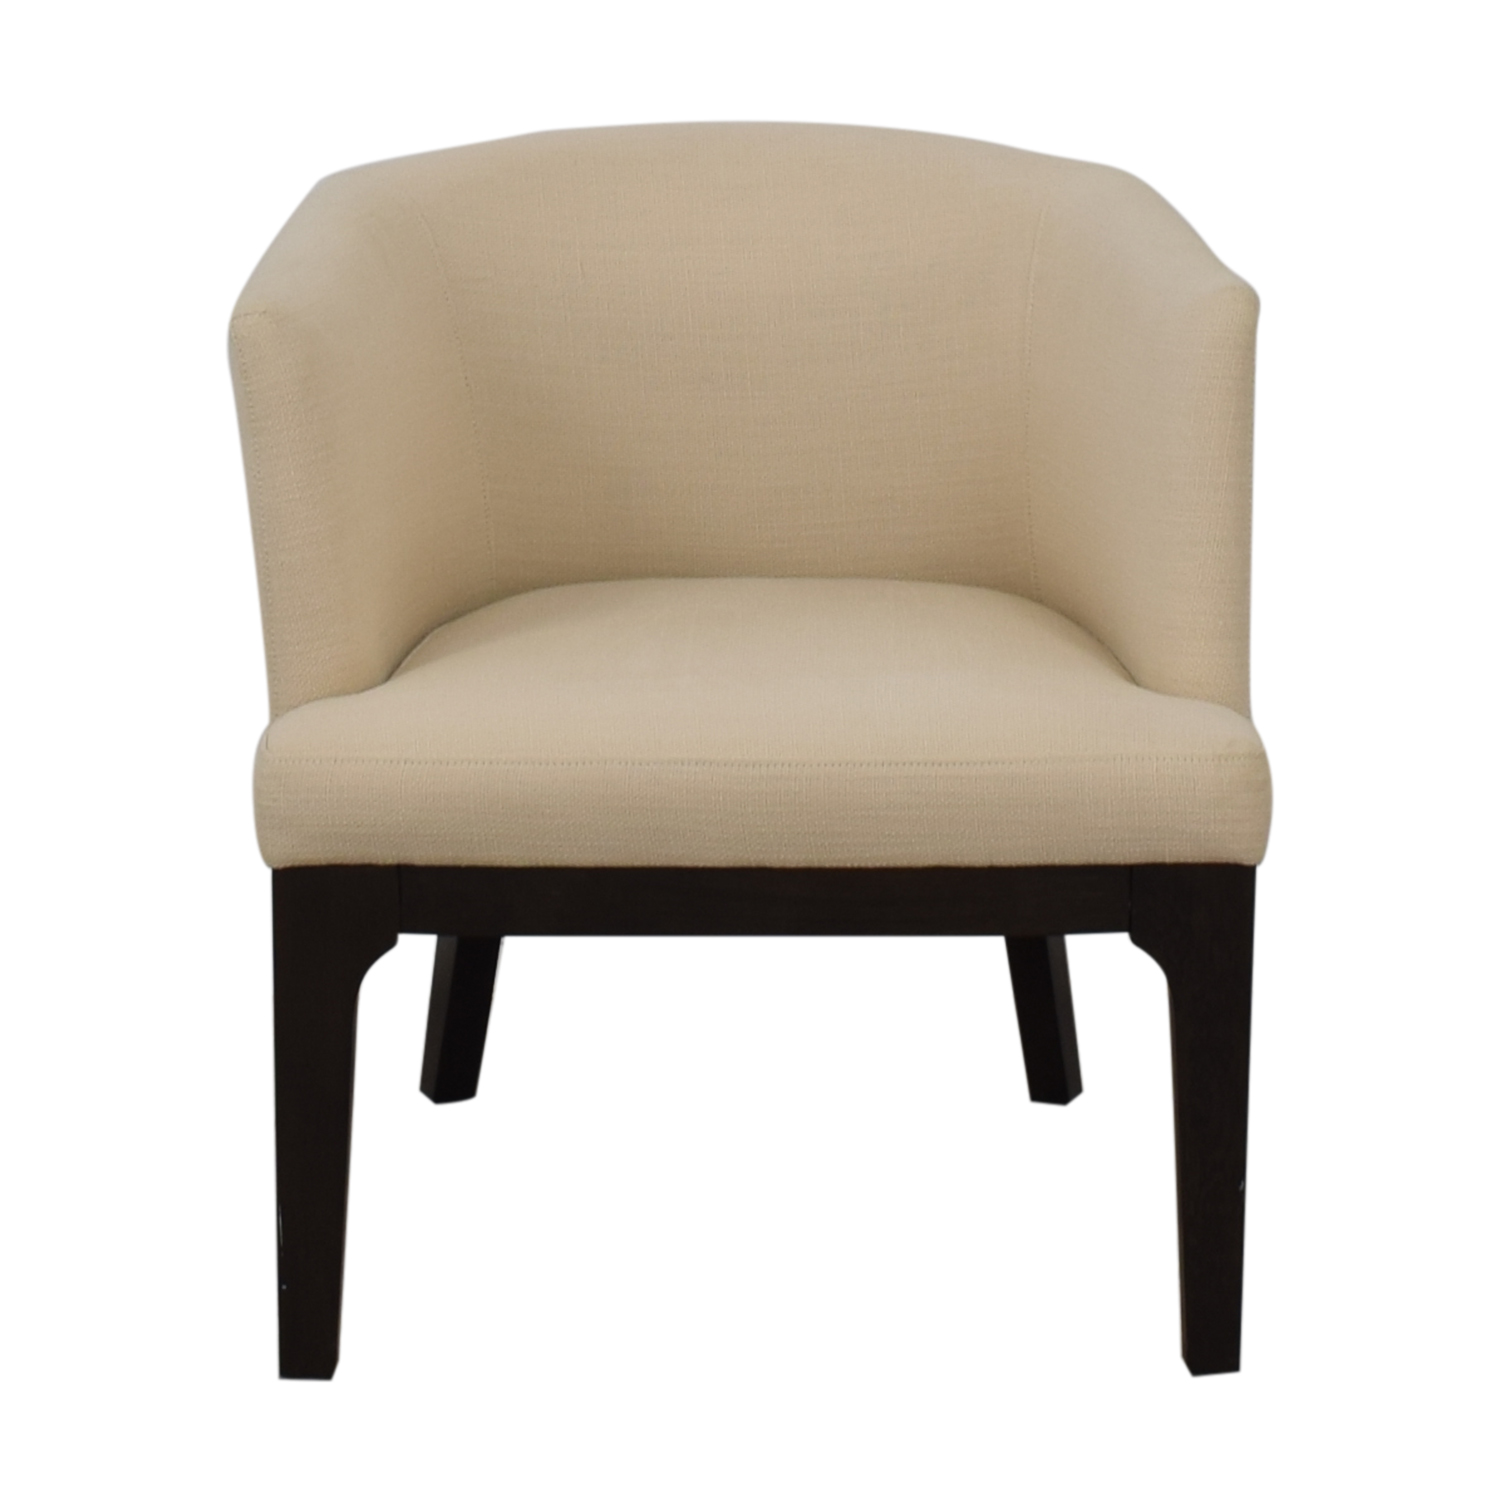 West Elm West Elm Oliver Chair for sale